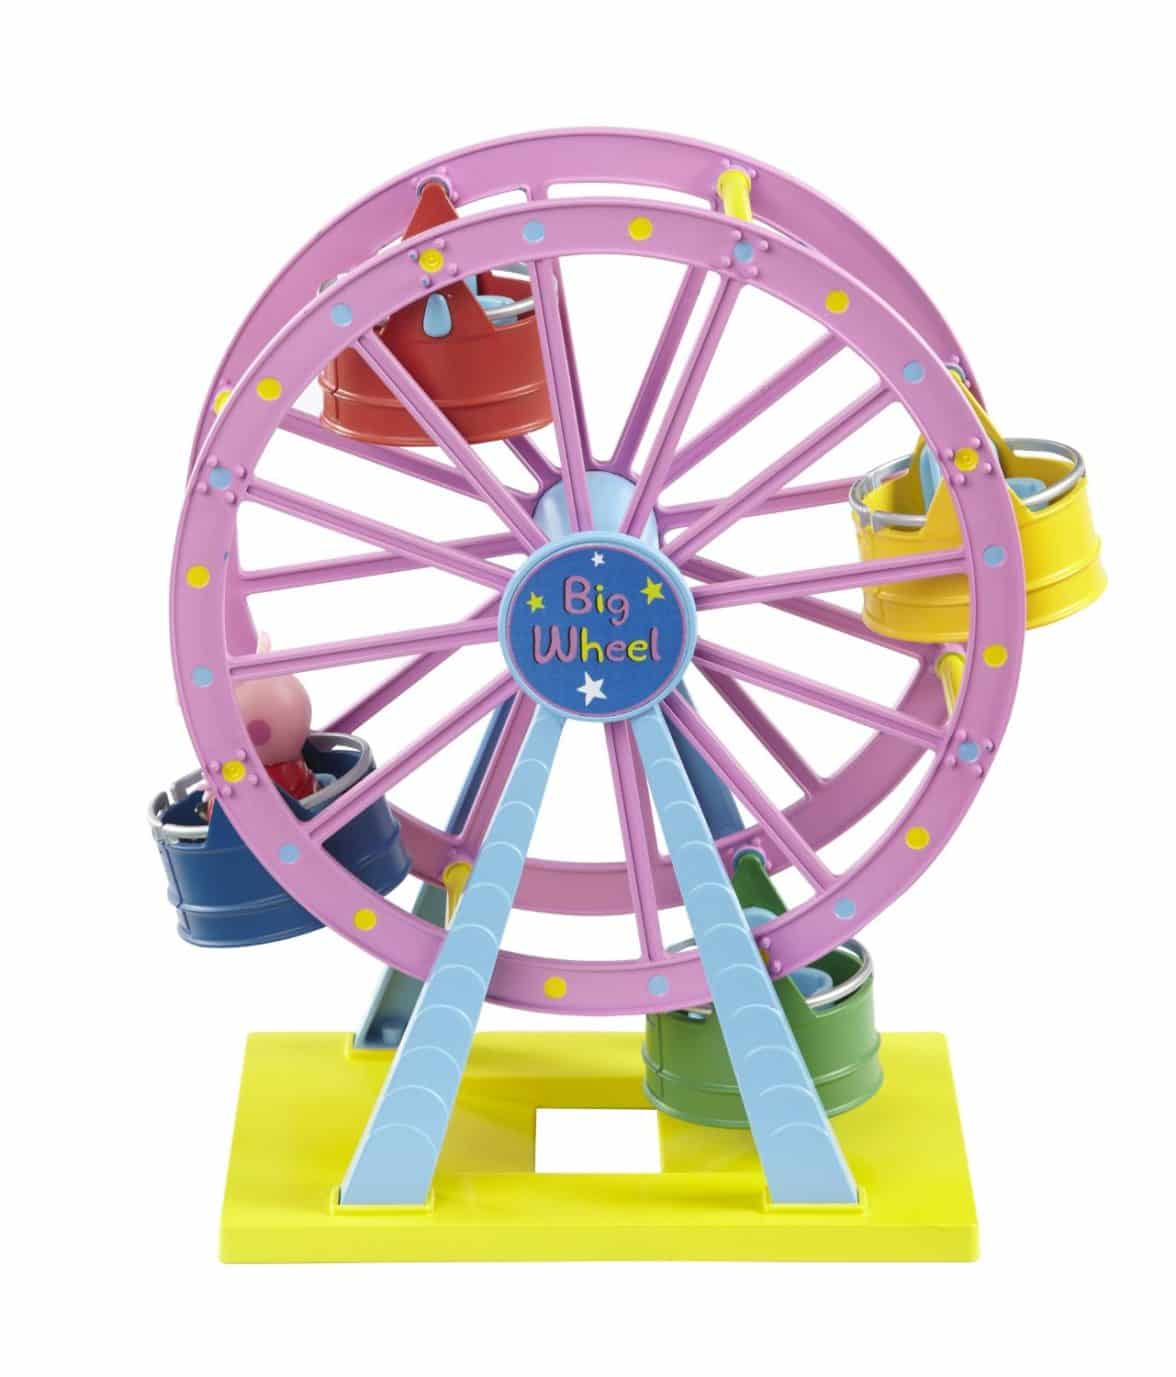 Peppa Pig's Theme Park Big Wheel